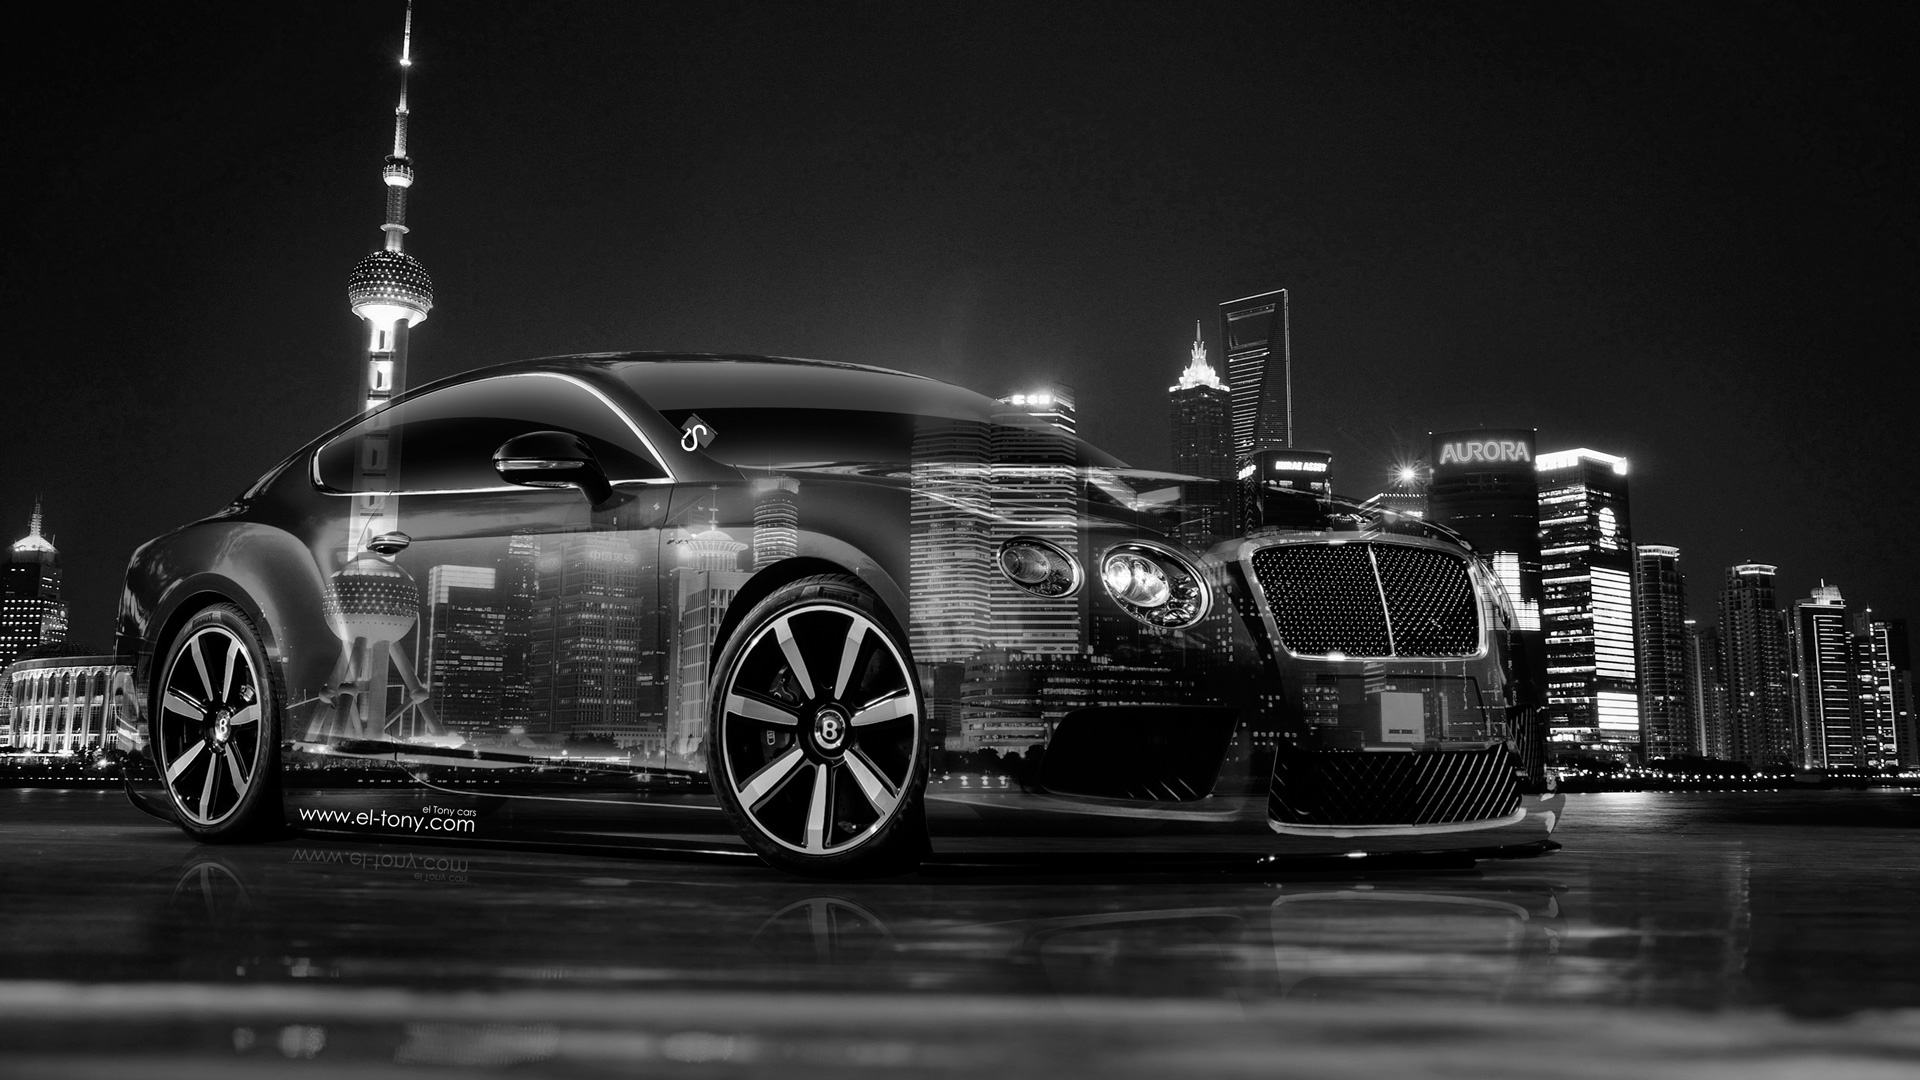 Exceptionnel Bentley Continental GT Crystal City Car 2014 HD